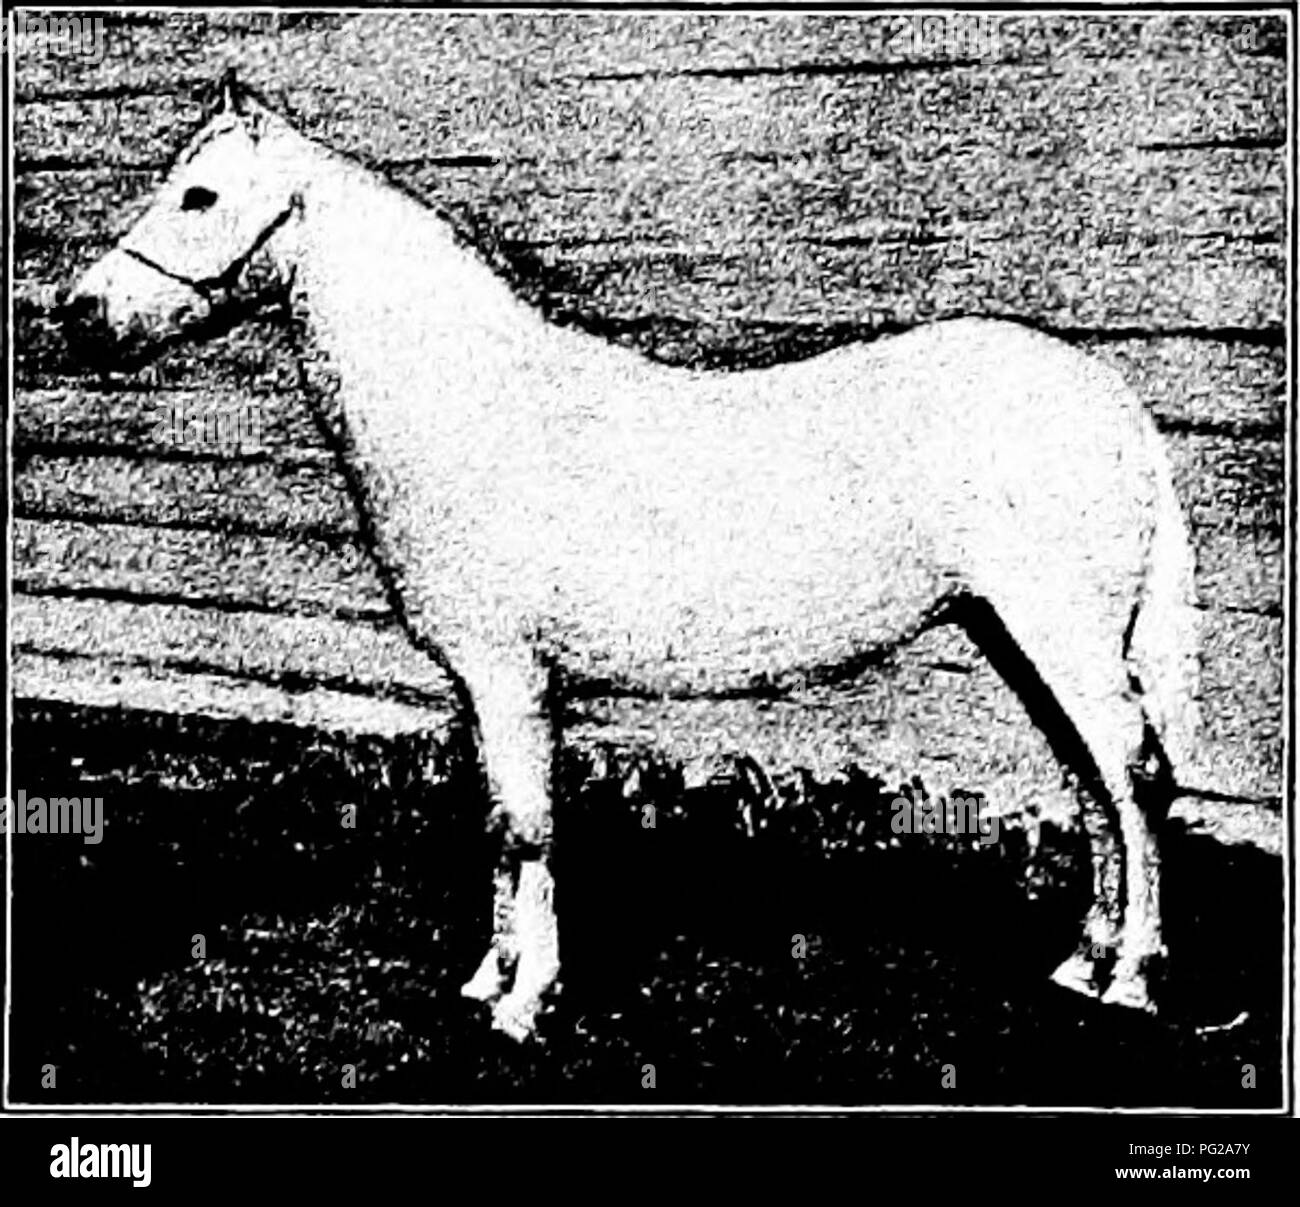 . Types and breeds of farm animals . Livestock. PONIES 147. these smaller types of Welsh horses. This society divides these ponies or small horses into four groups as follows: 1. Welsh mountain pony. Height not to exceed I2i hands. Color of any sort. In type this resembles a small Arabian, pos- sessing much the same character and carriage of head, rump, and tail. It is found in the more hilly sections, and has great bone and superior muscle and en- durance. No doubt it was originally improved by Arab stallions. 2. Should range from 12 to 13^ hands, is of the cobby type, and is not as well ada - Stock Image